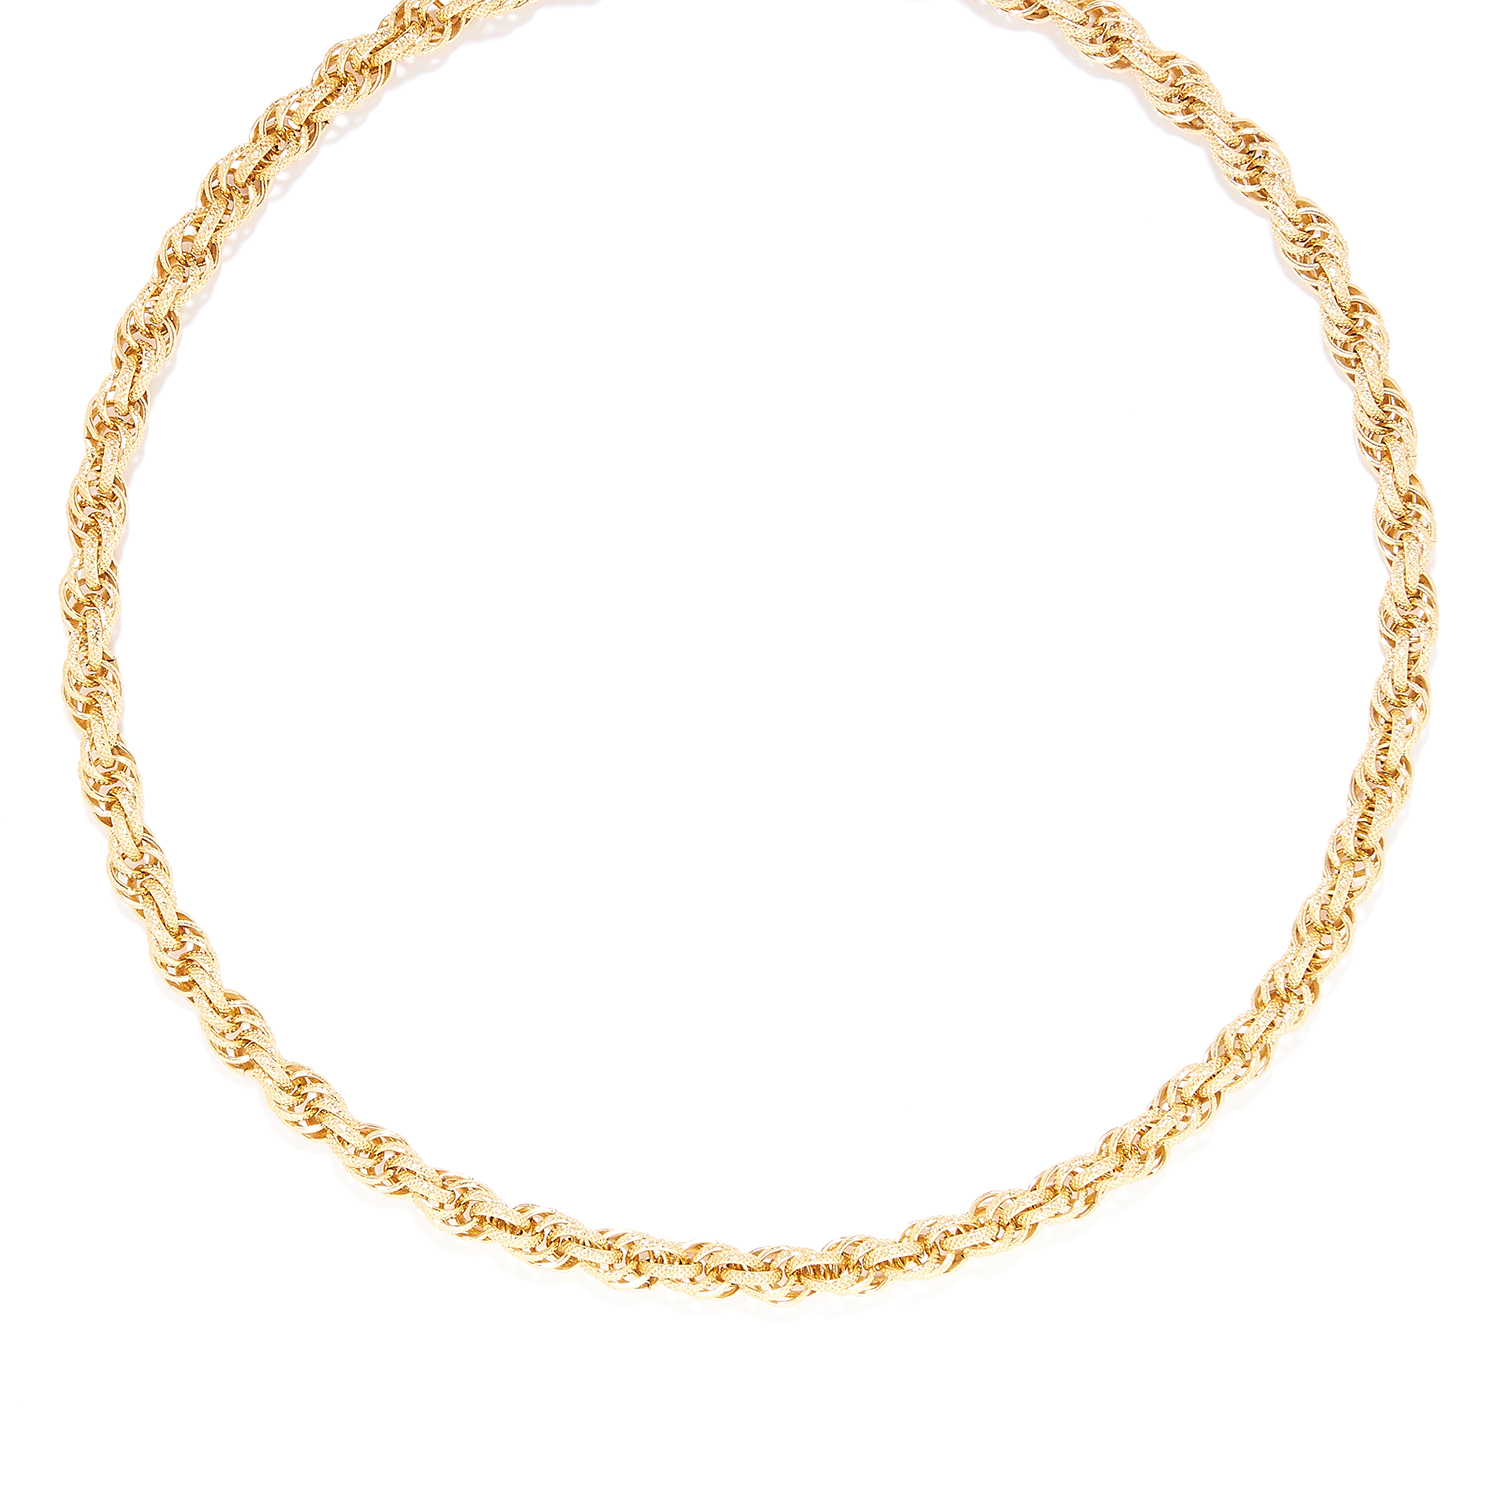 Los 13 - FANCY LINK CHAIN NECKLACE unmarked, 78cm, 29.8g.